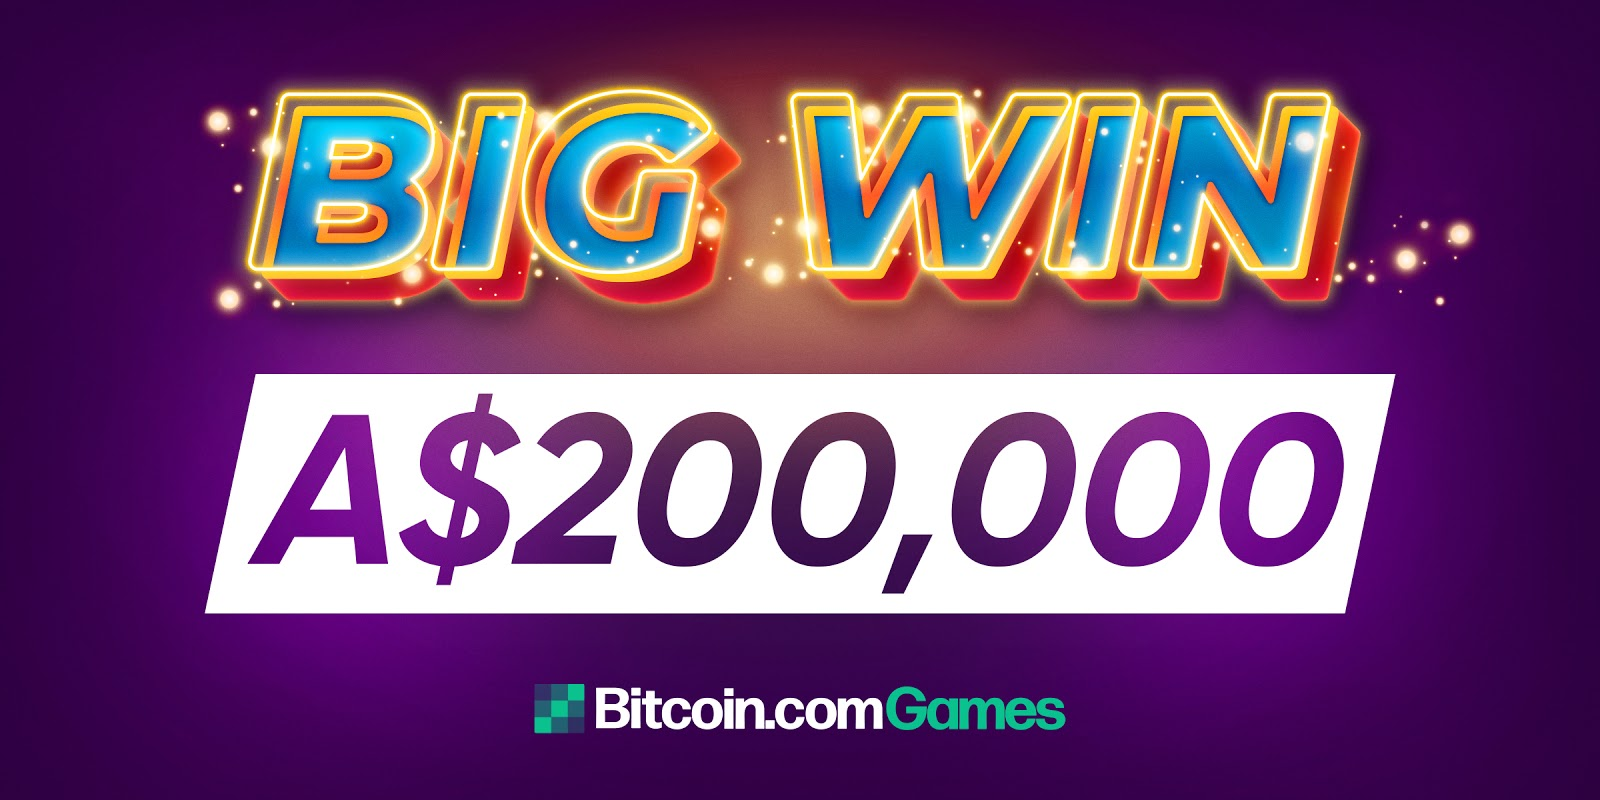 Winner Cashes Out A$200,000 from Bitcoin.com Games